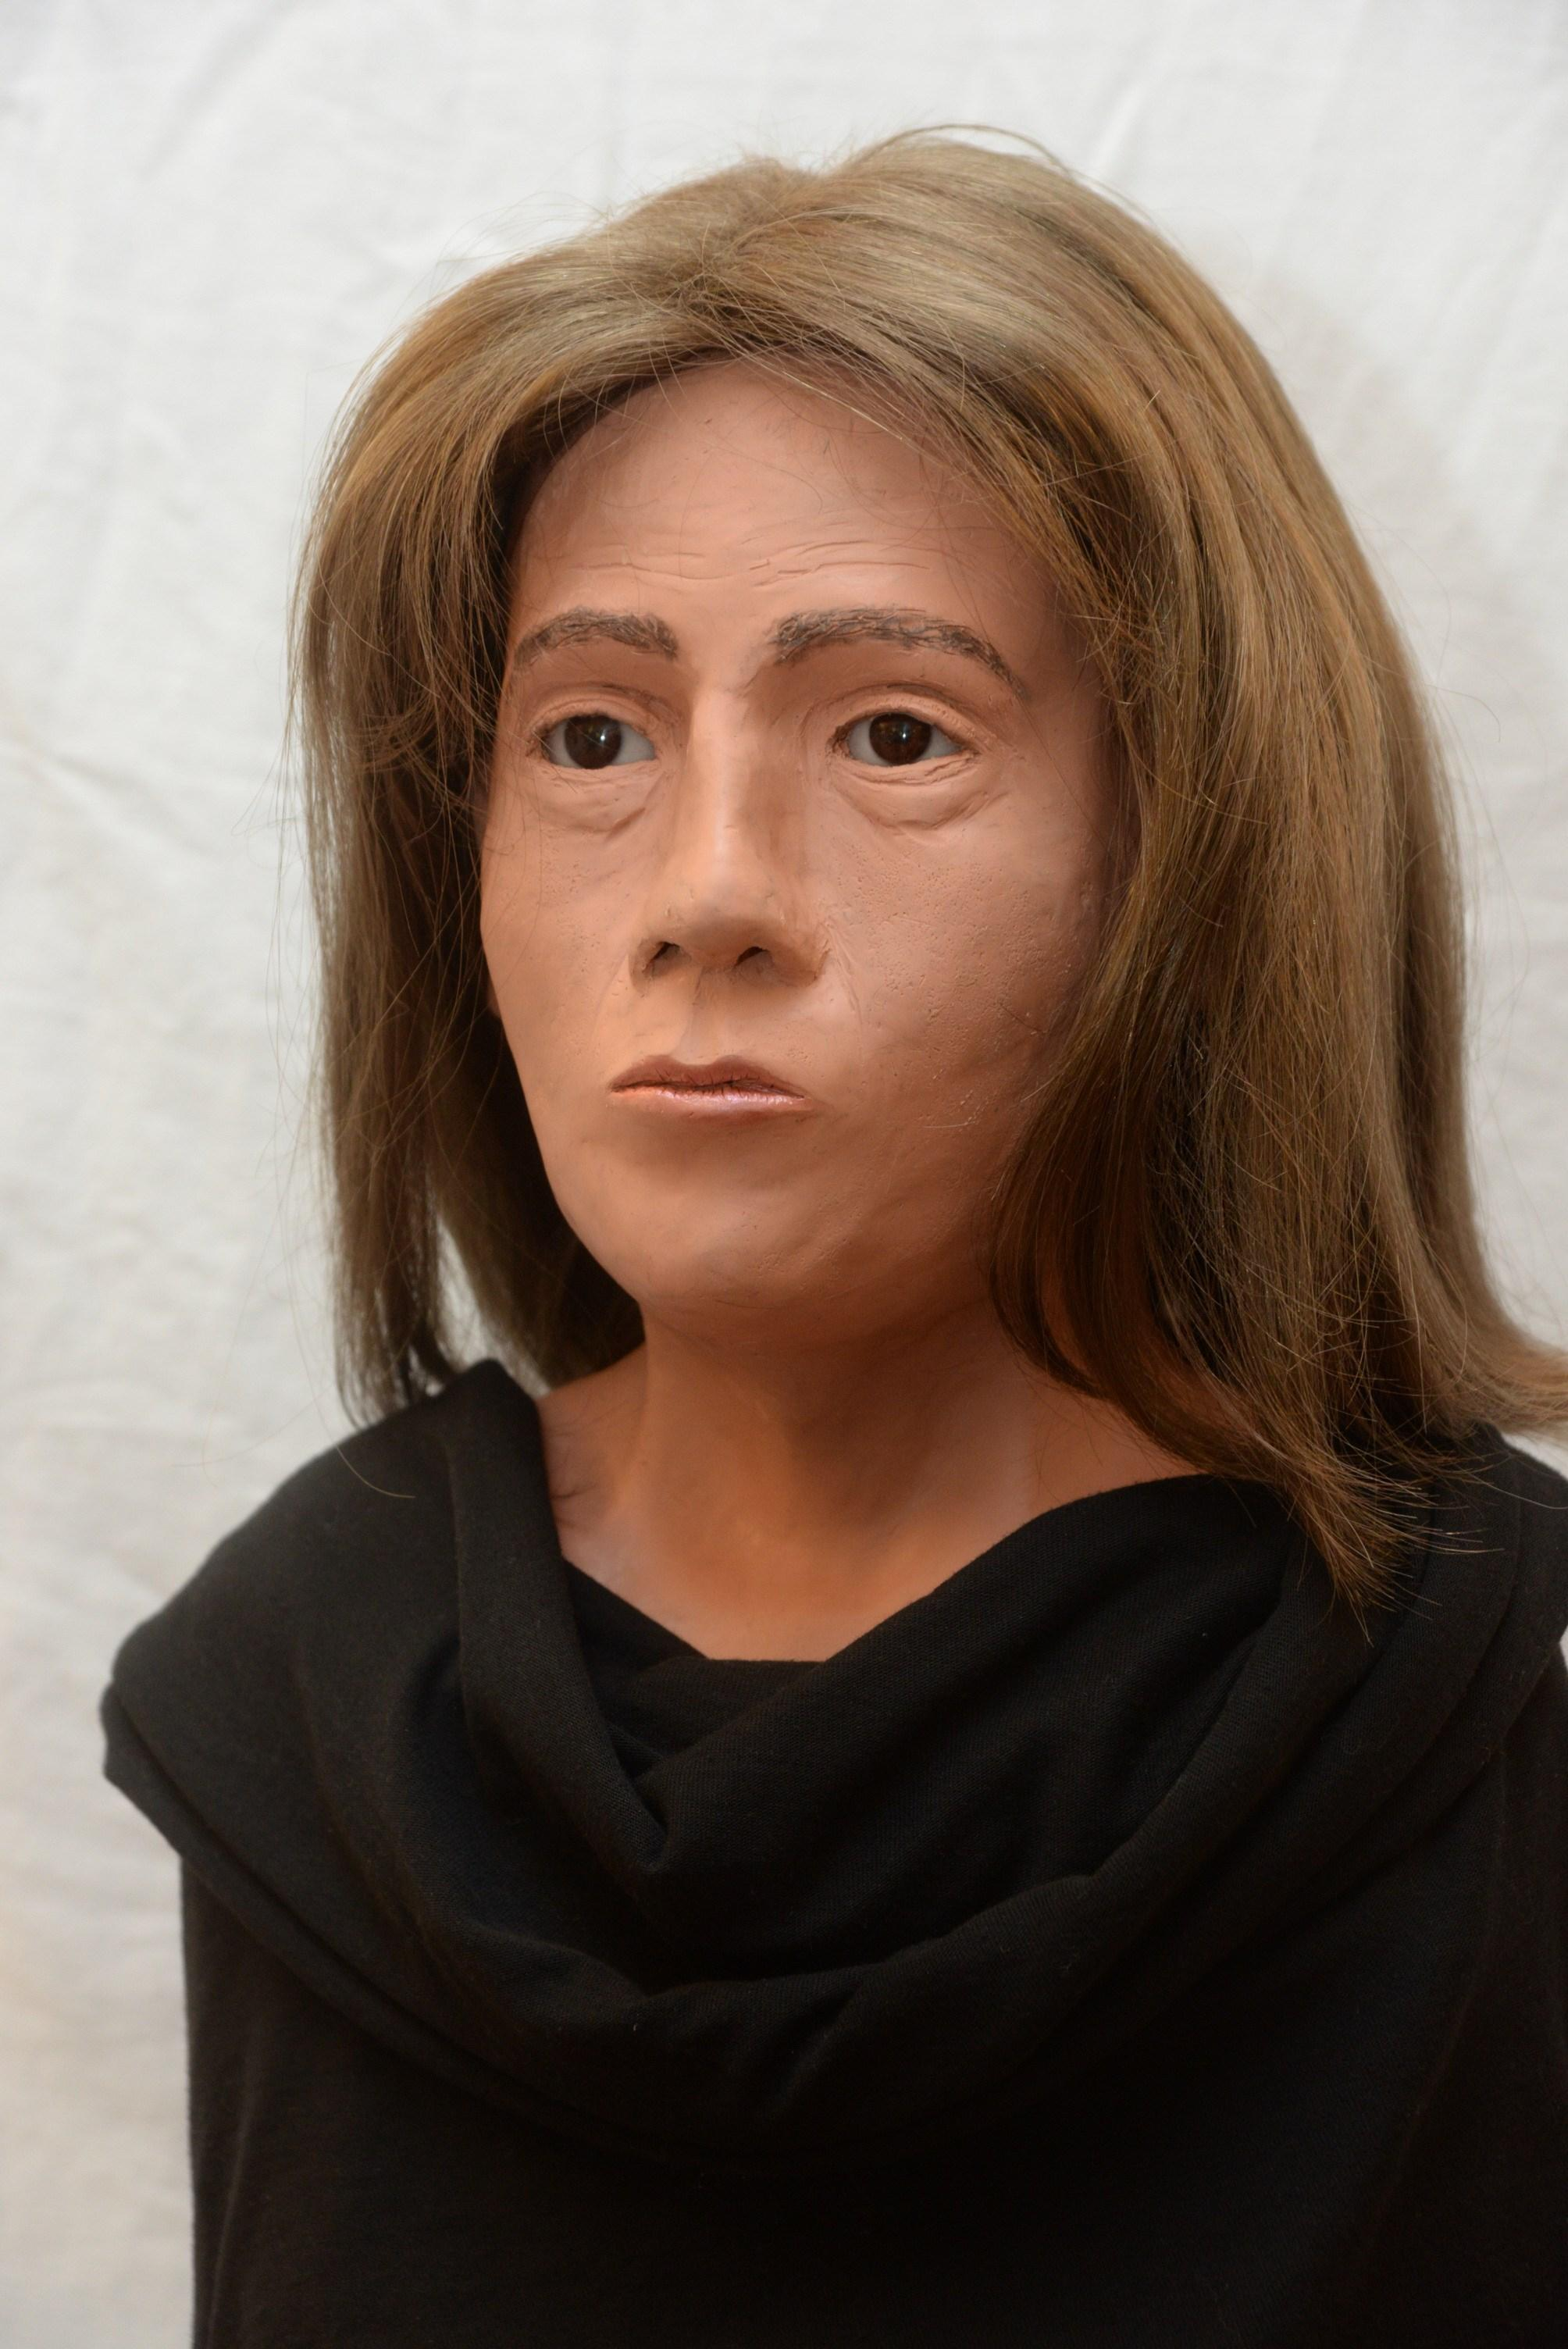 Mossleigh Jane Doe